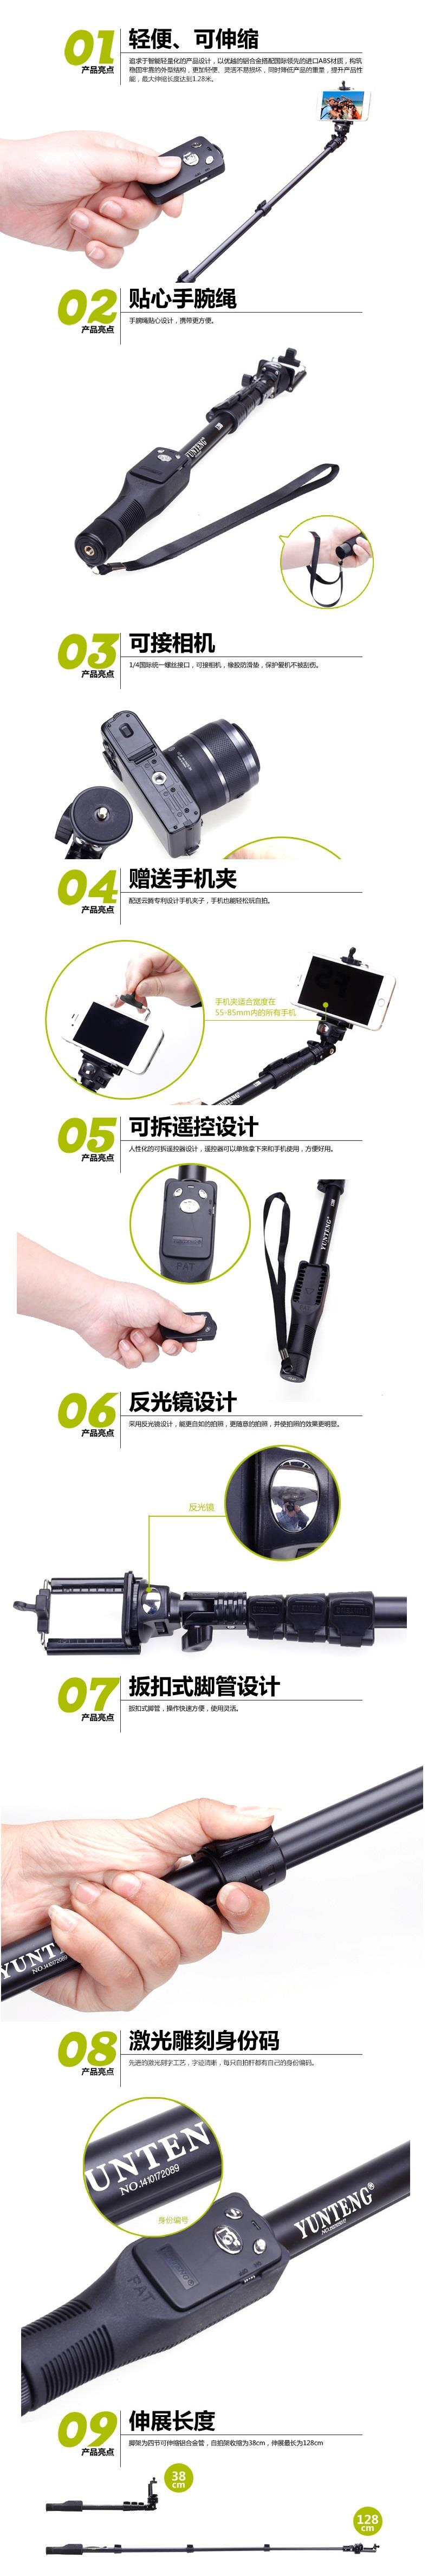 YunTeng YT-1288 Bluetooth Wireless Selfie Stick Monopod Phone Holder